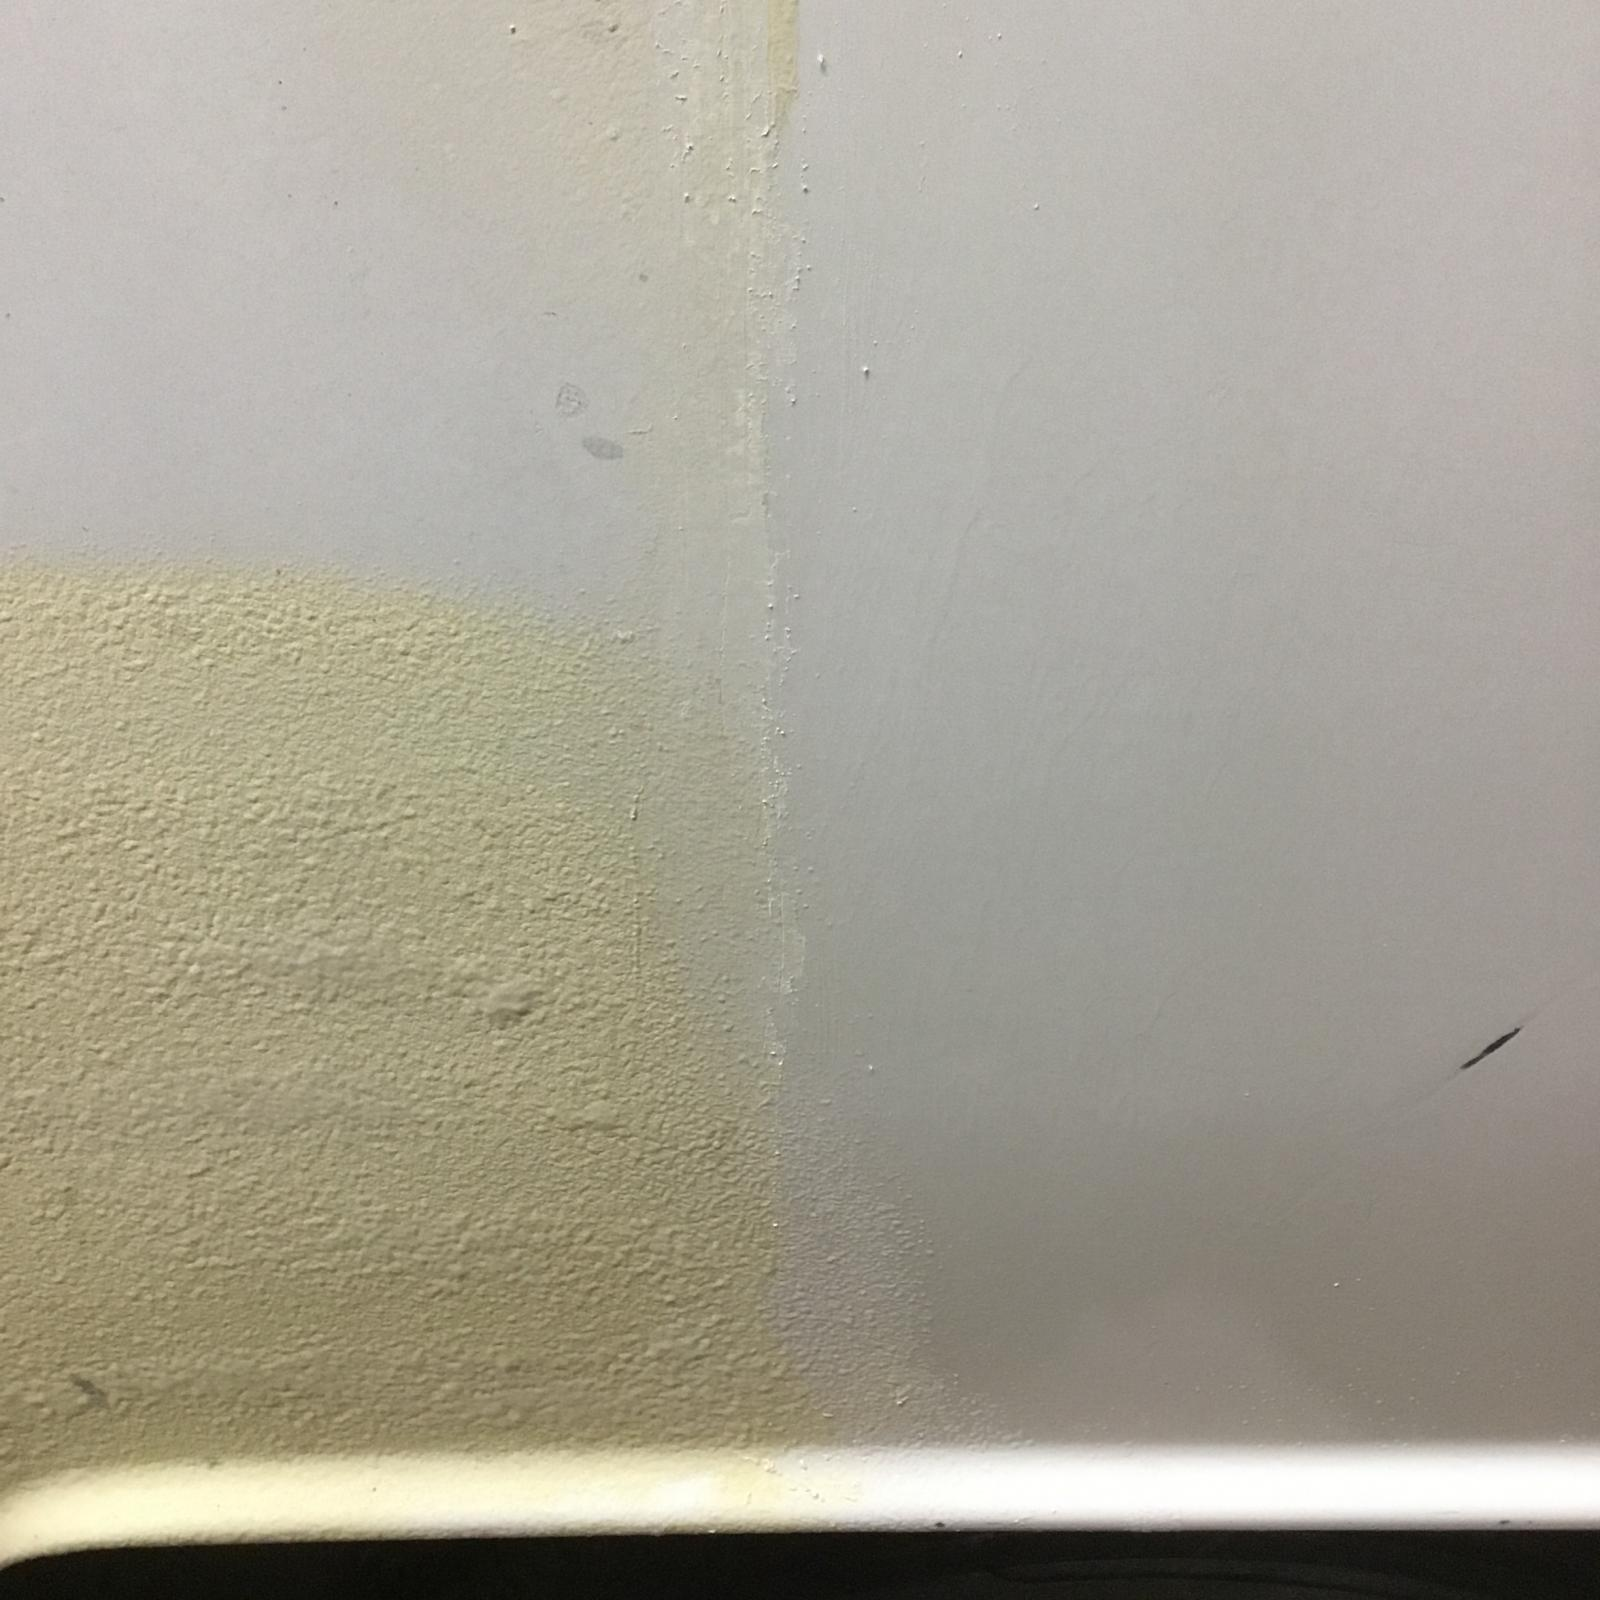 Easy off paint removal